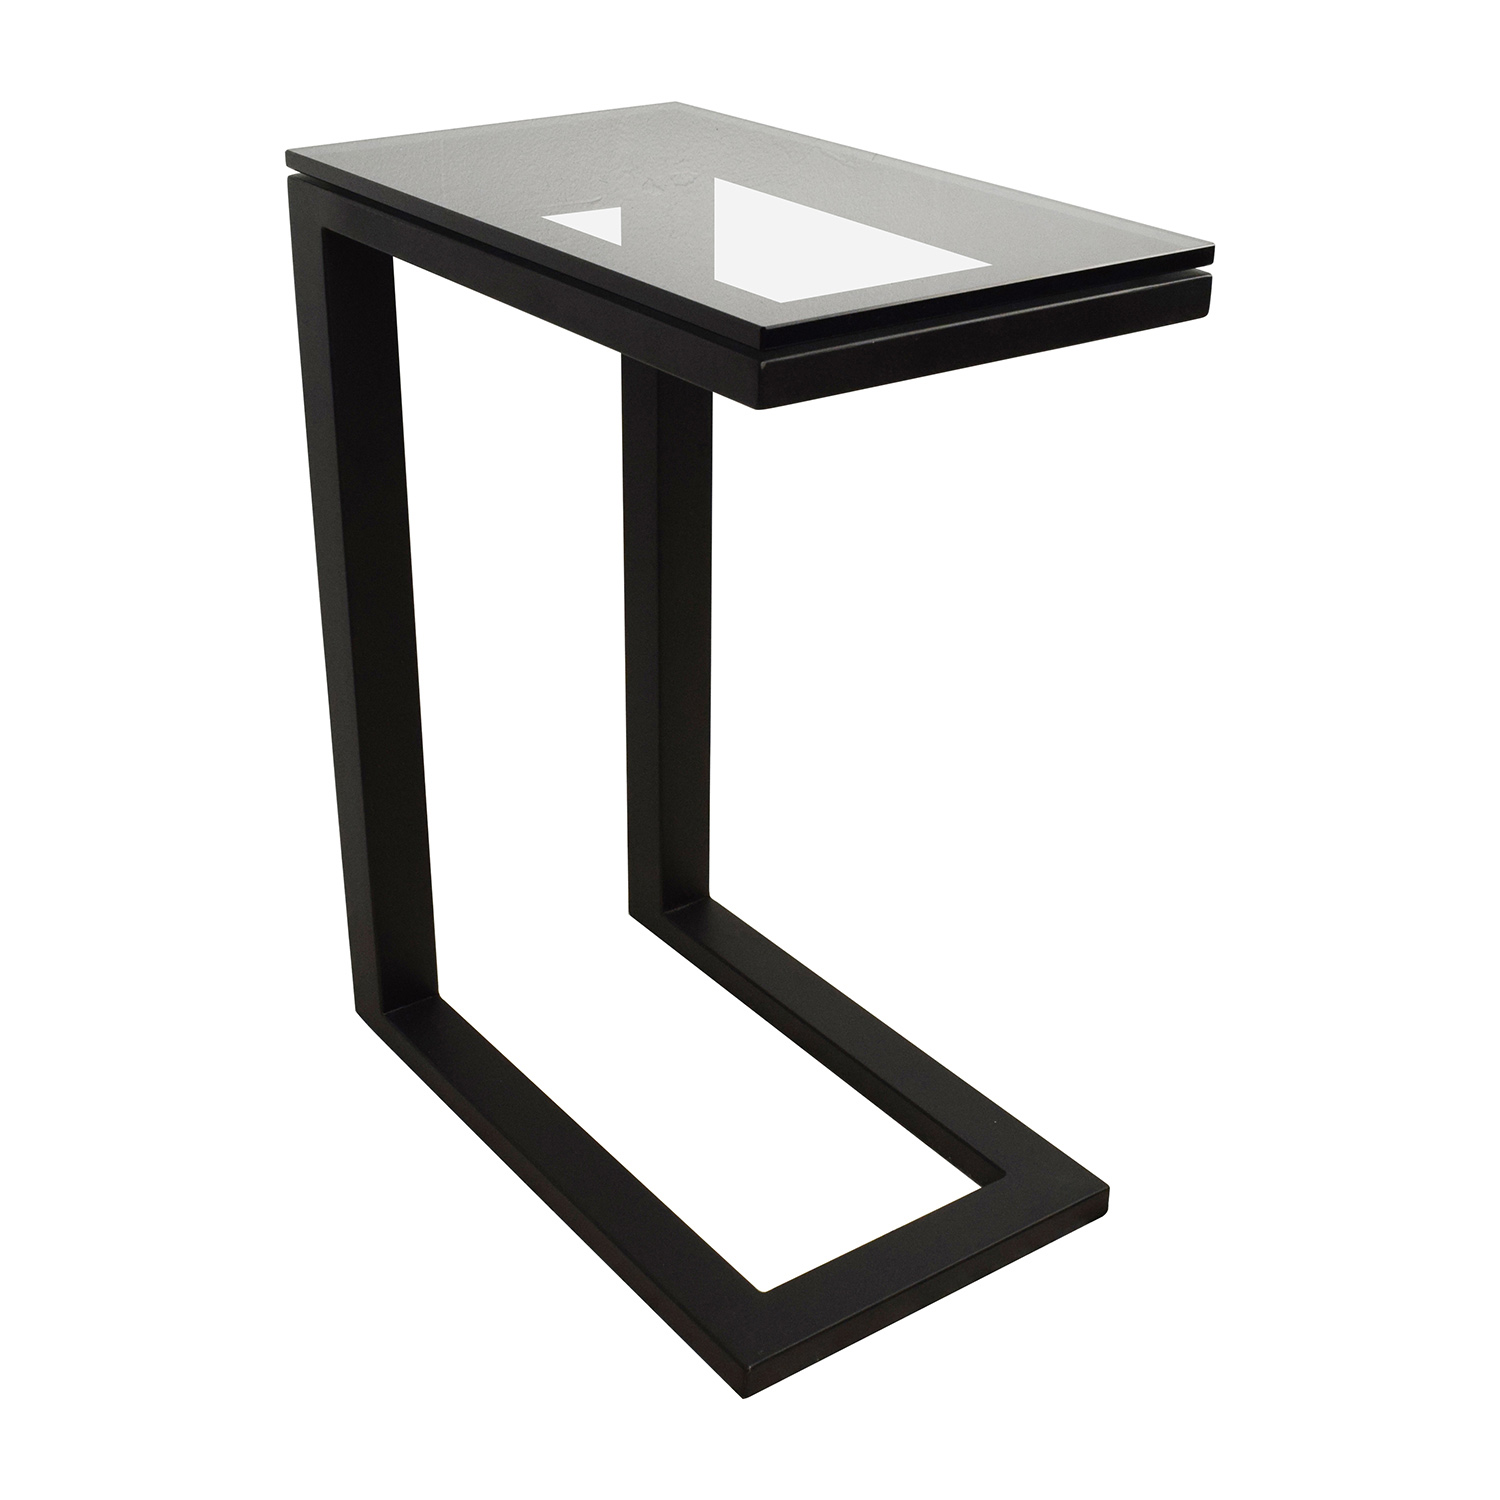 off crate and barrel parsons glass top black steel base table accent end tables between two chairs dining edmonton sears coffee high lighting hardwood floor threshold square